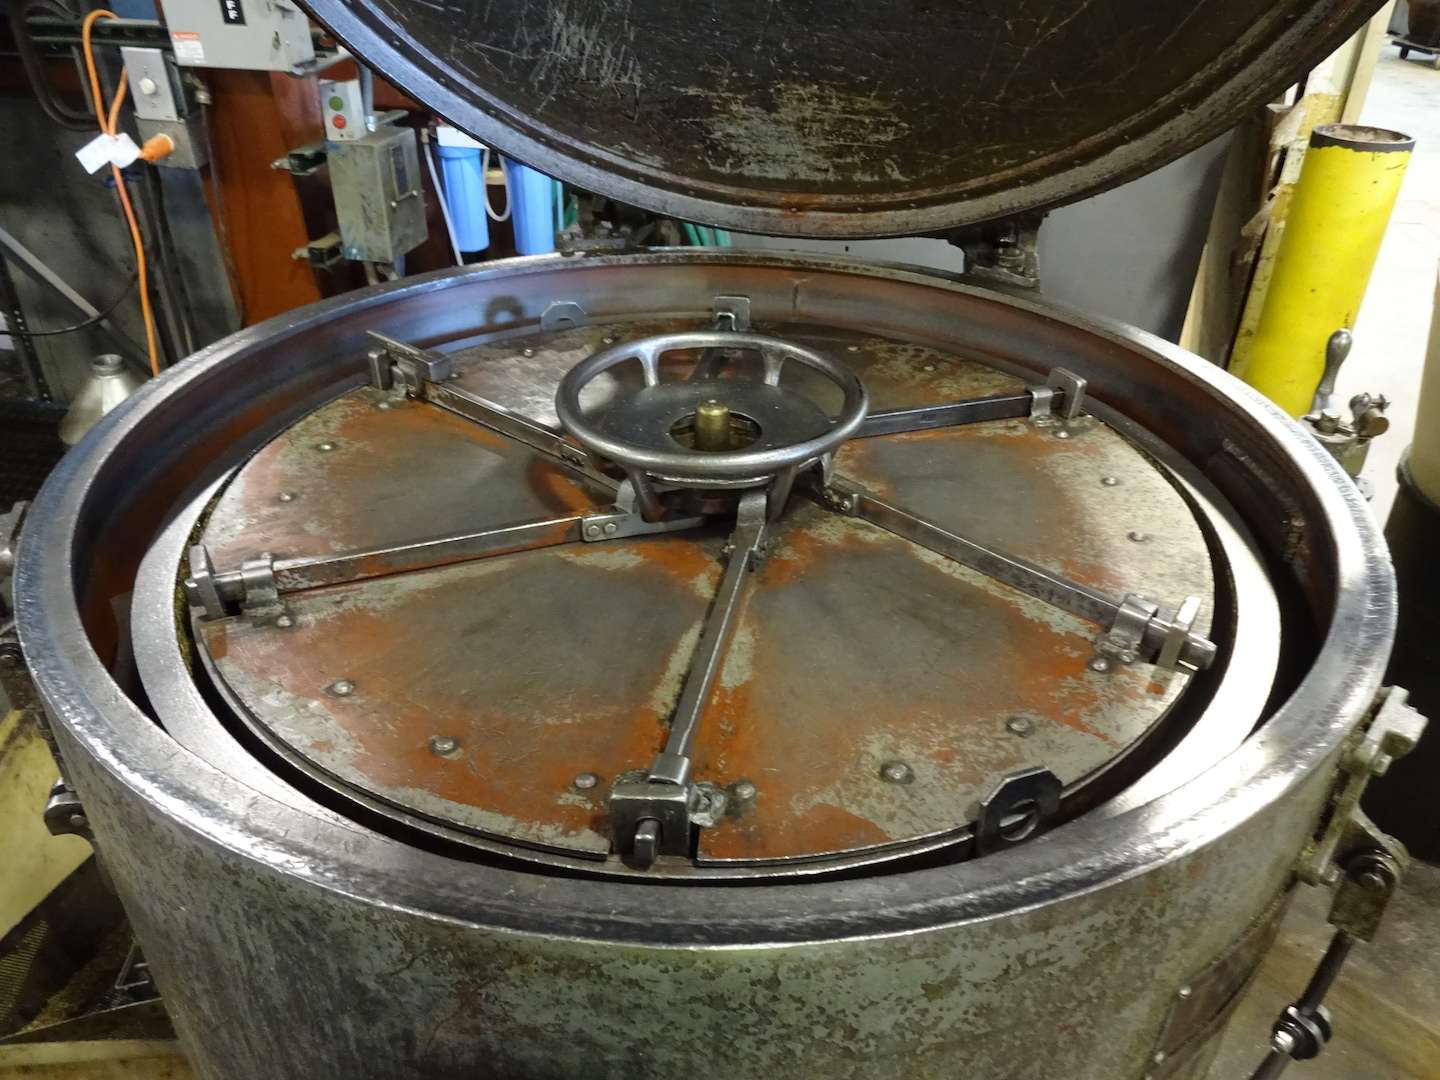 Lot 55 - Tolhurst Center-Slung Size 40 Oil Separator, S/N T88438, 700 RPM